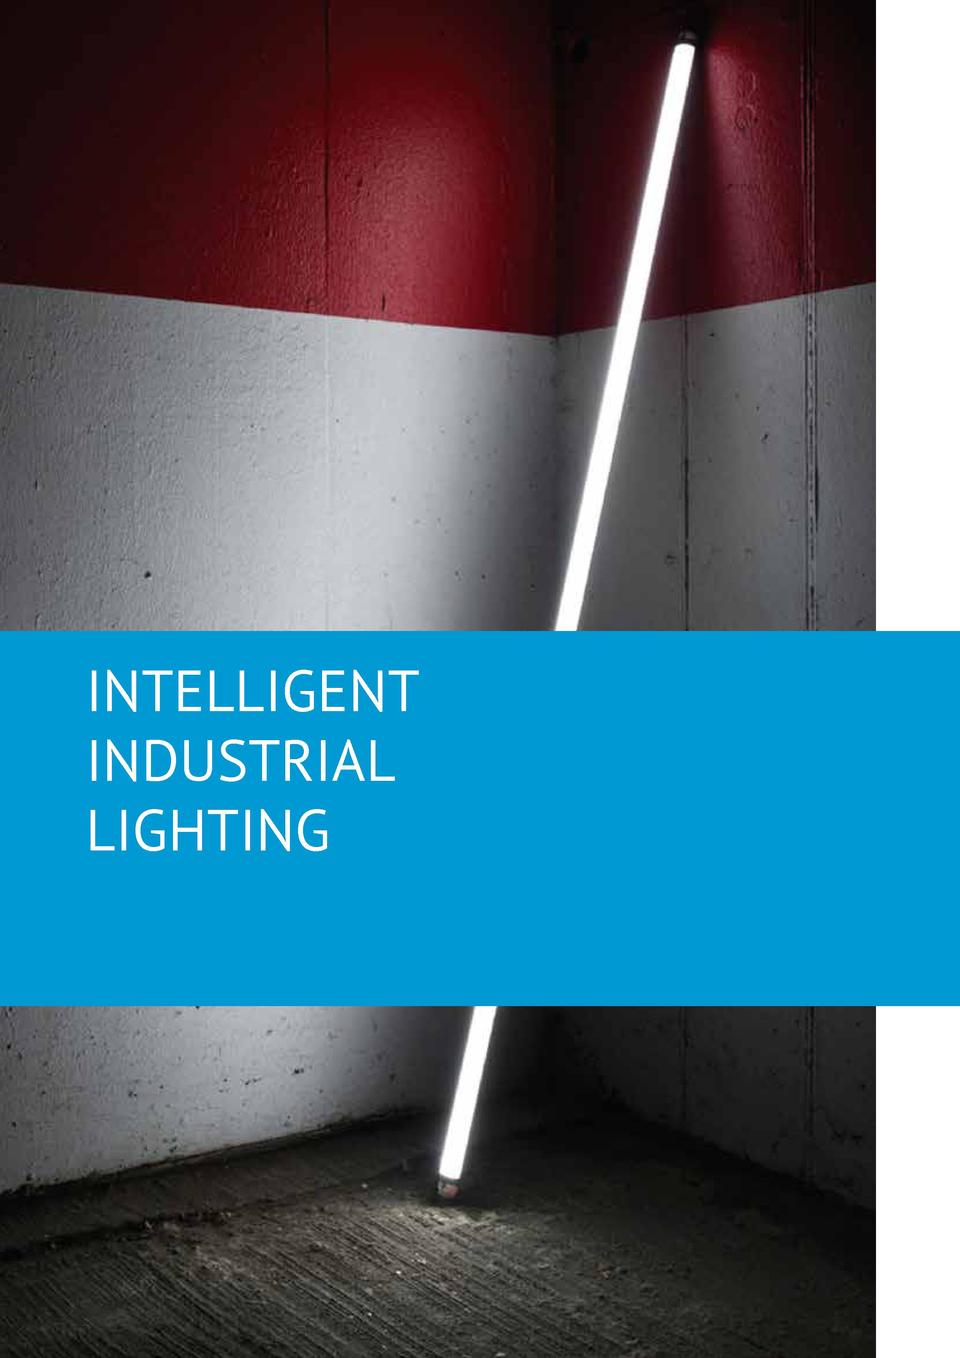 INTELLIGENT INDUSTRIAL LIGHTING